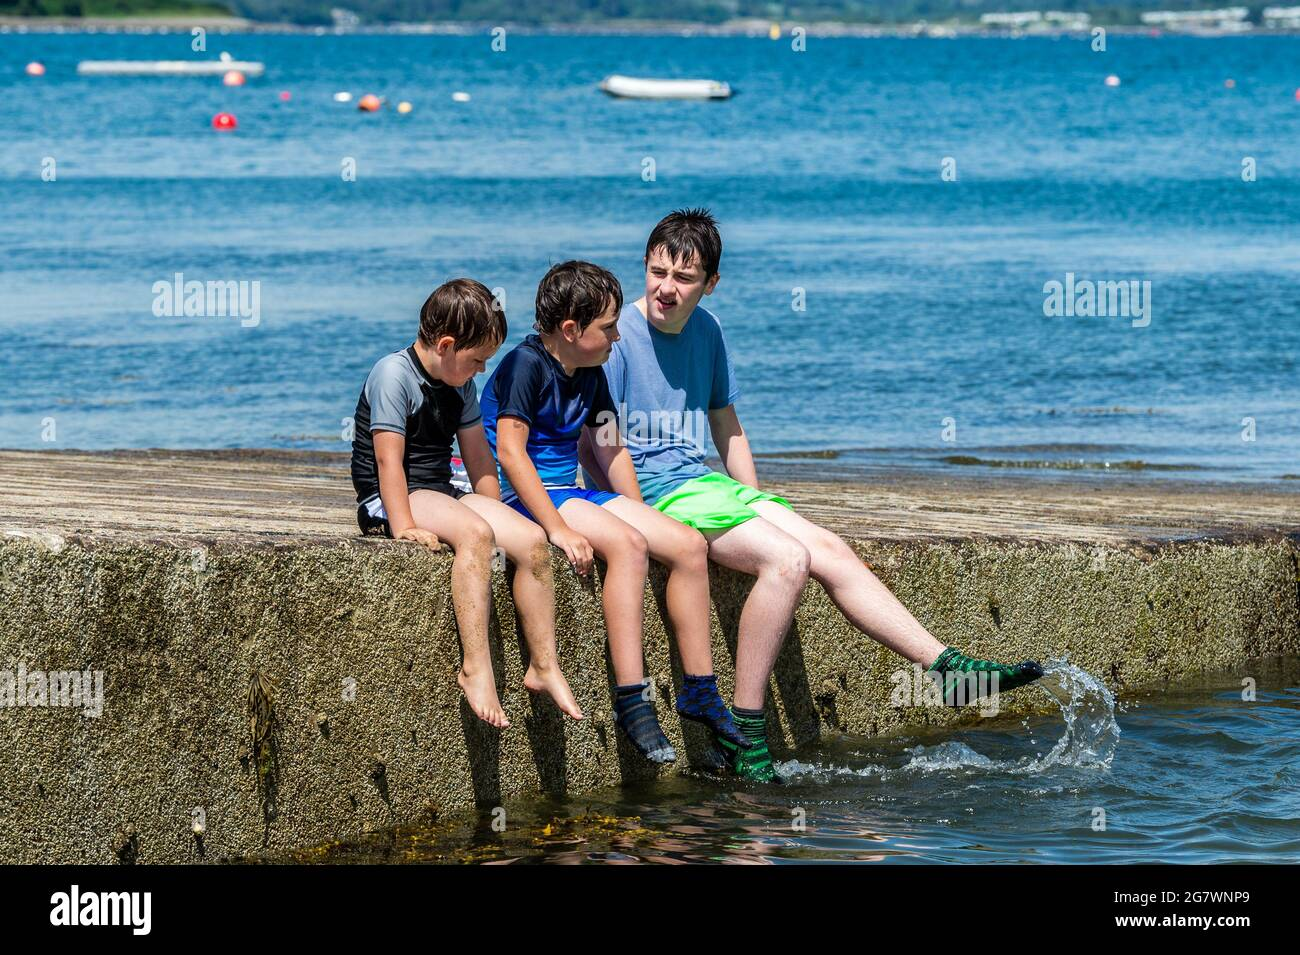 bantry-west-cork-ireland-16th-july-2021-the-sun-shone-on-bantry-in-west-cork-today-with-temperatures-hitting-25-degrees-with-even-hotter-weather-predicted-for-the-weekend-people-took-the-opportunity-to-cool-off-in-the-sea-at-abbey-beach-credit-ag-newsalamy-live-news-2G7WNP9.jpg